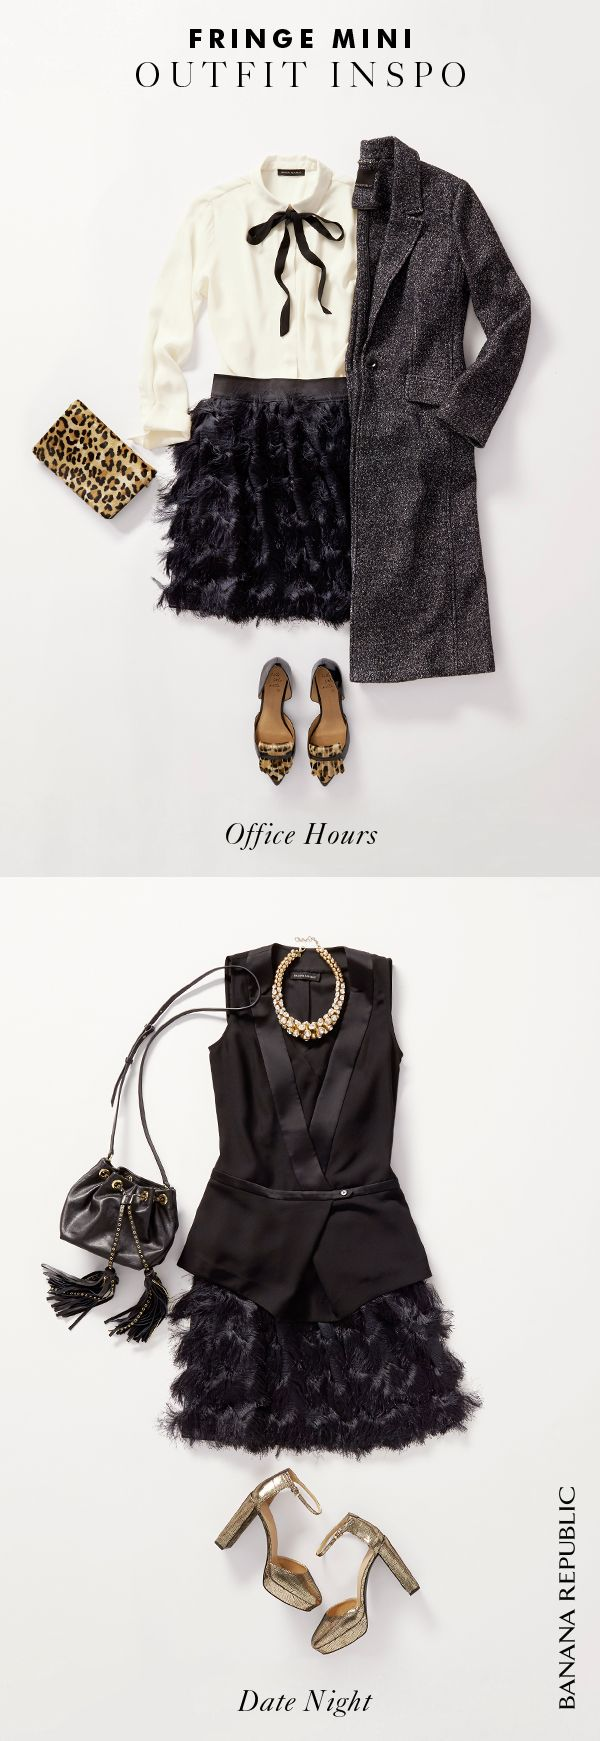 The ultimate party skirt that also happens to be office friendly? Here she is. This flirty tiered-fringe mini can go from desk to a dinner party, and easily fits the bill for NYE. By day, wear it with a cozy turtleneck and tights. At dinnertime pair with a blouse, tights and a leopard clutch. And for your most festive holiday party, dress it up with a sleek black vest, statement necklace, evening bag and shimmery heels.